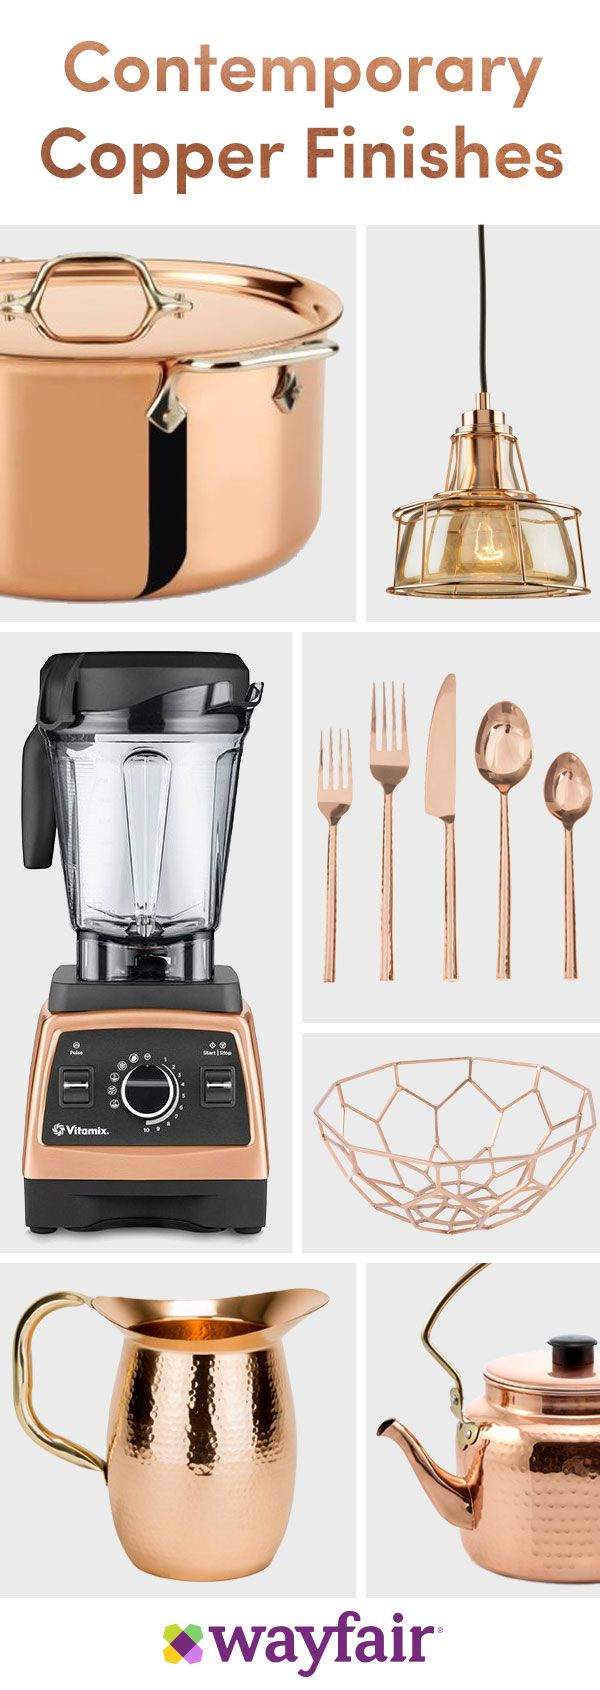 Copper or rose gold accent pieces make for a beautiful and fun finishing touch in a room with bohemian or glam style. Copper fixtures, utensils, and appliances look particularly stylish in a trendy kitchen!